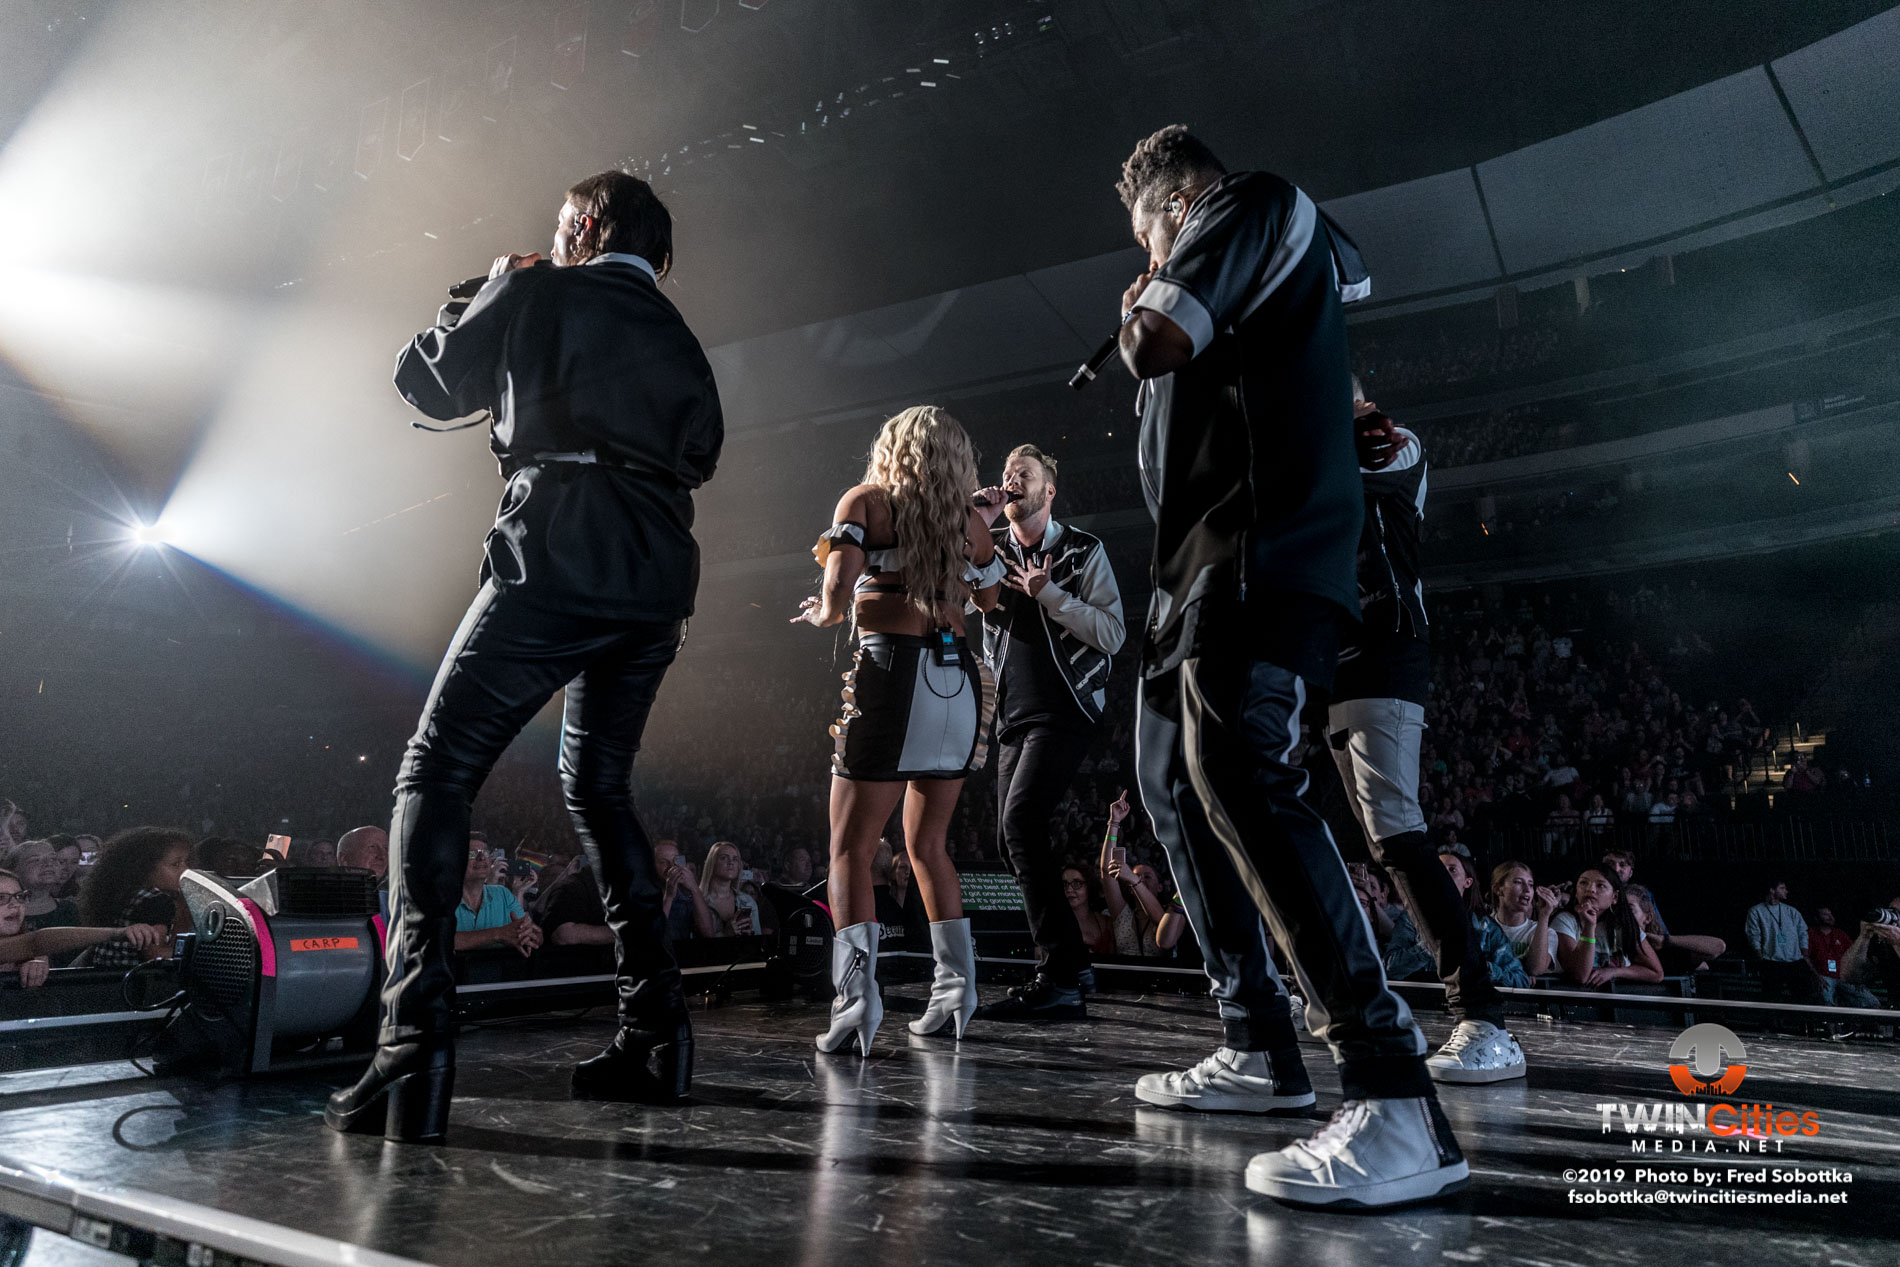 Pentatonix Brings Talent And Fun For The Whole Family To